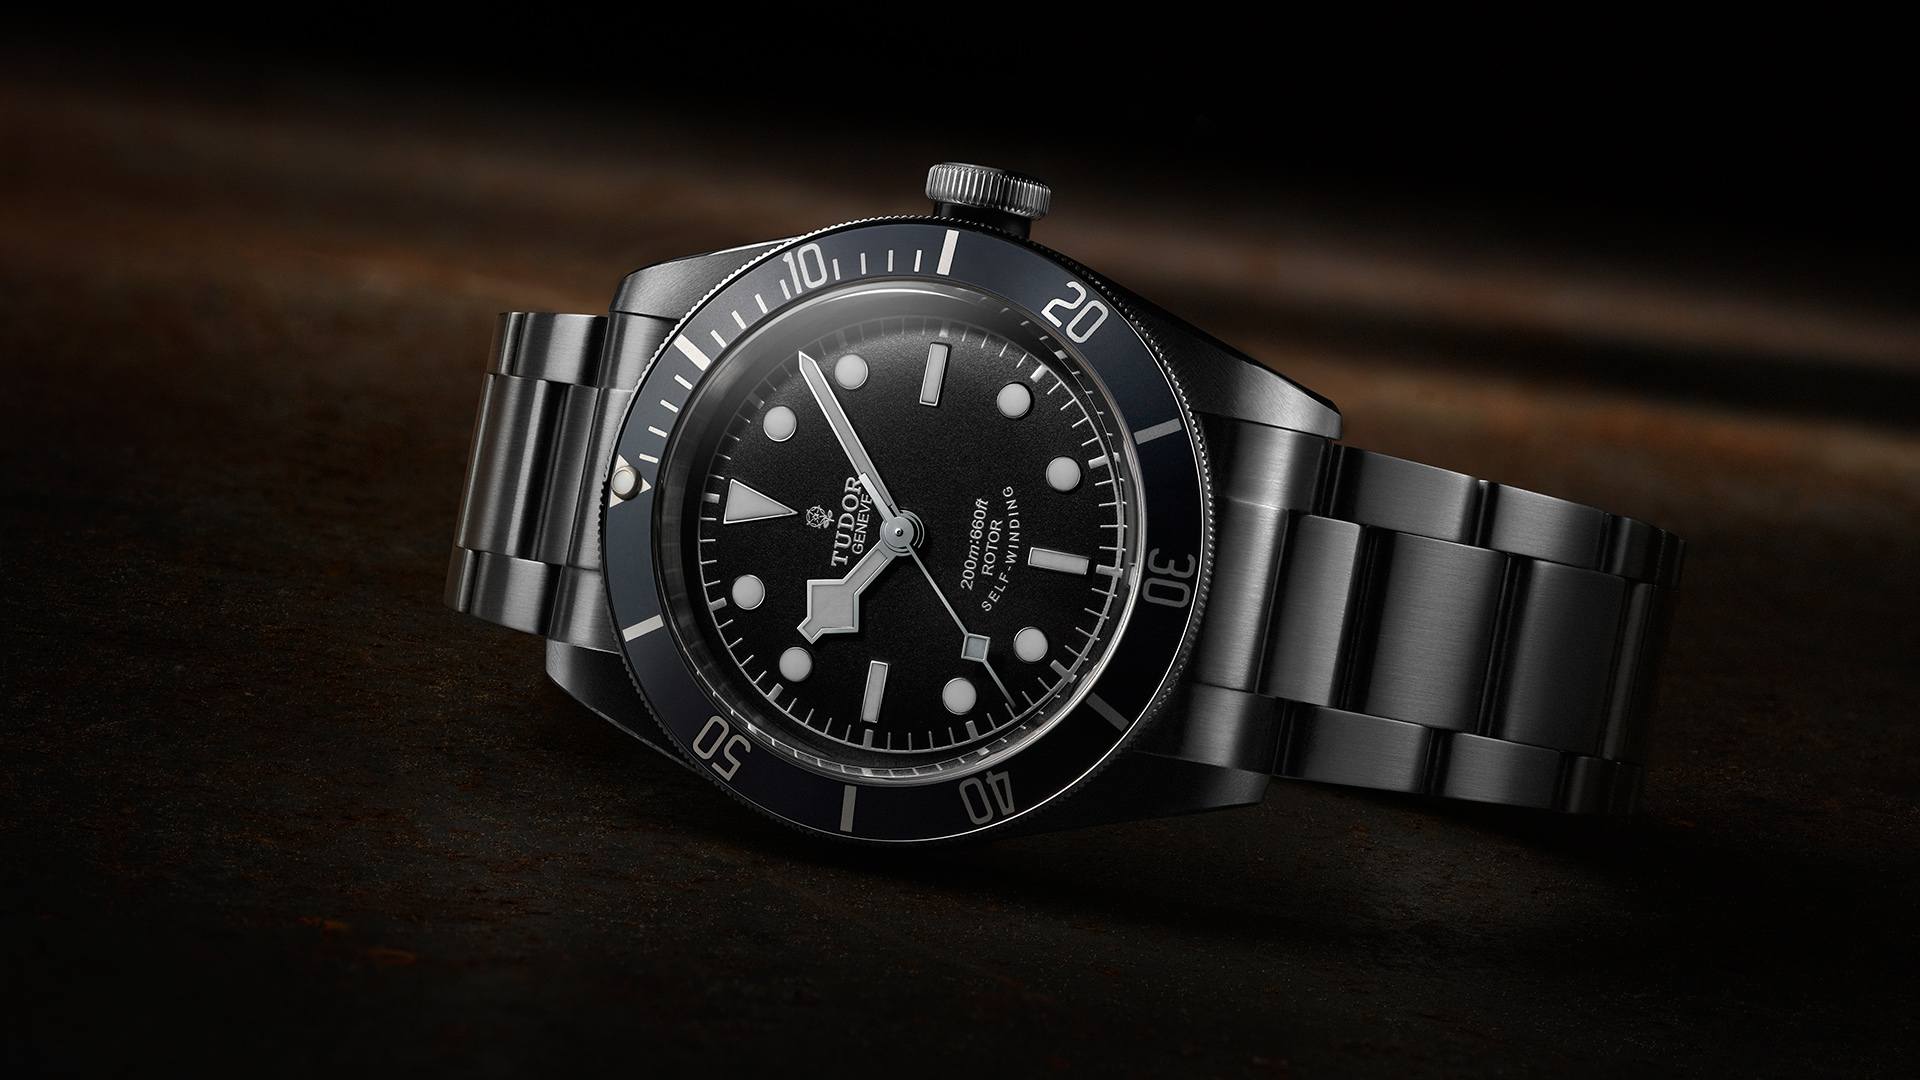 Tudor watch advertising photography